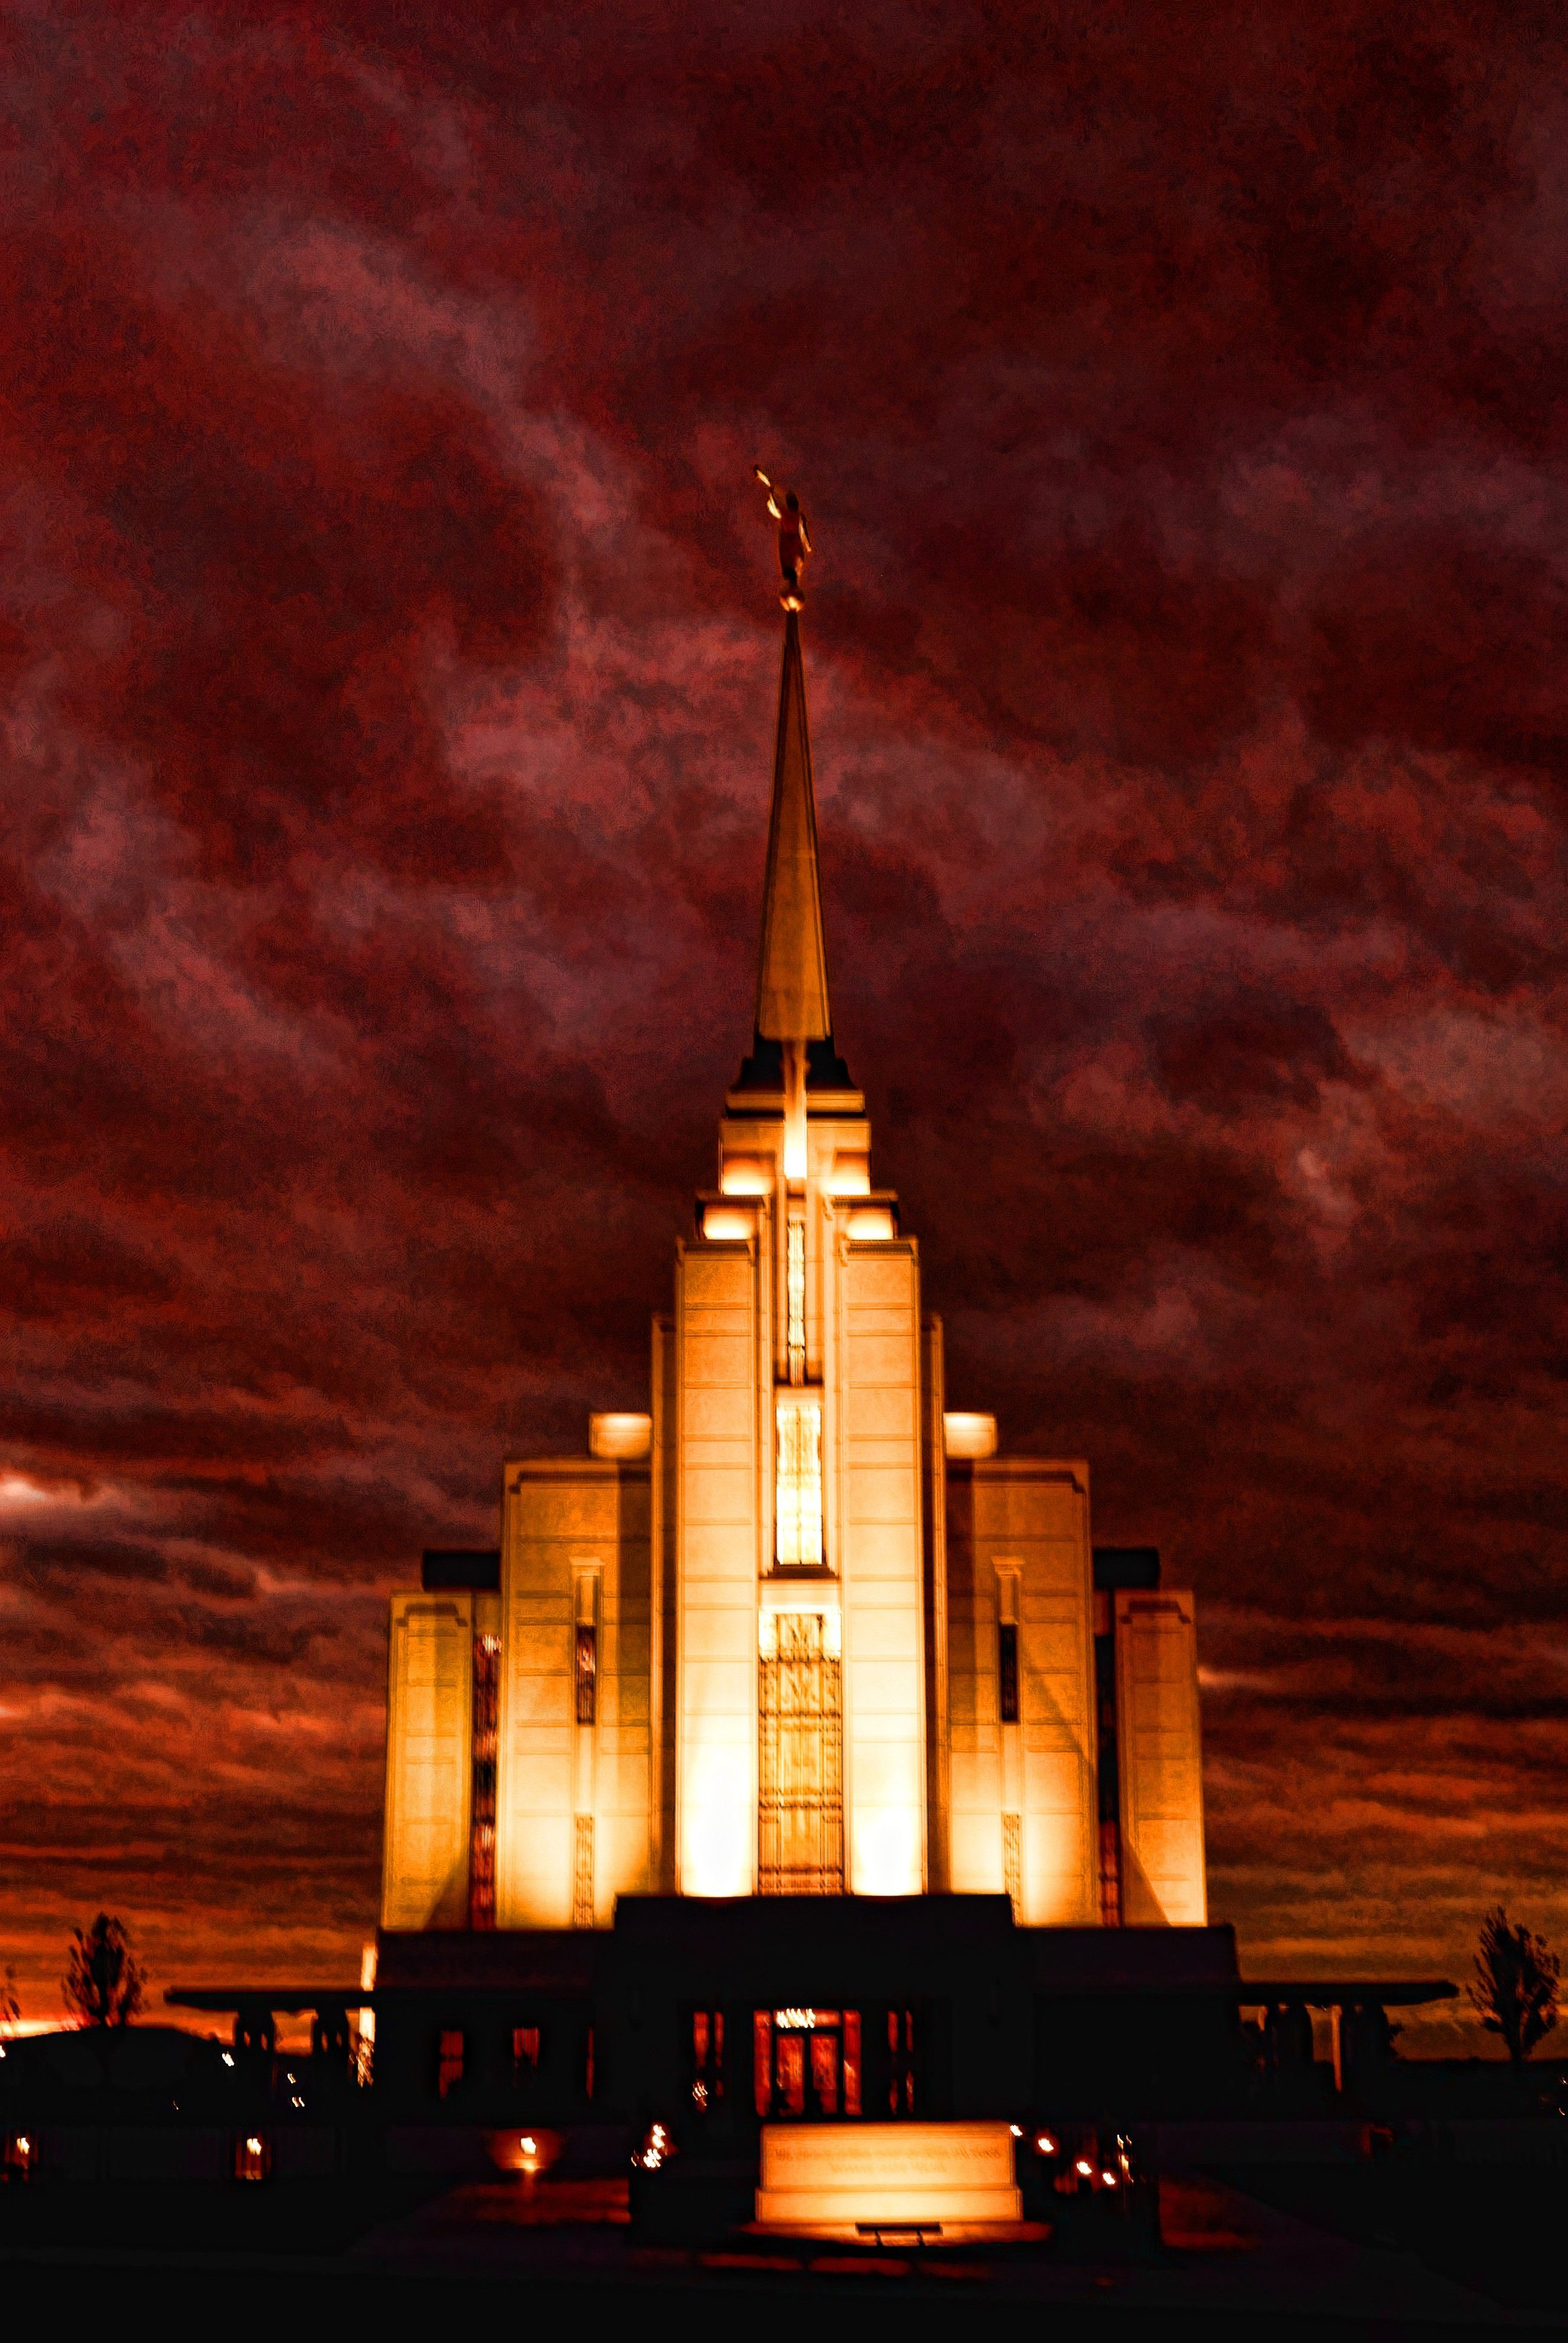 The Rexburg Idaho Temple in the evening during a storm, including the name sign.